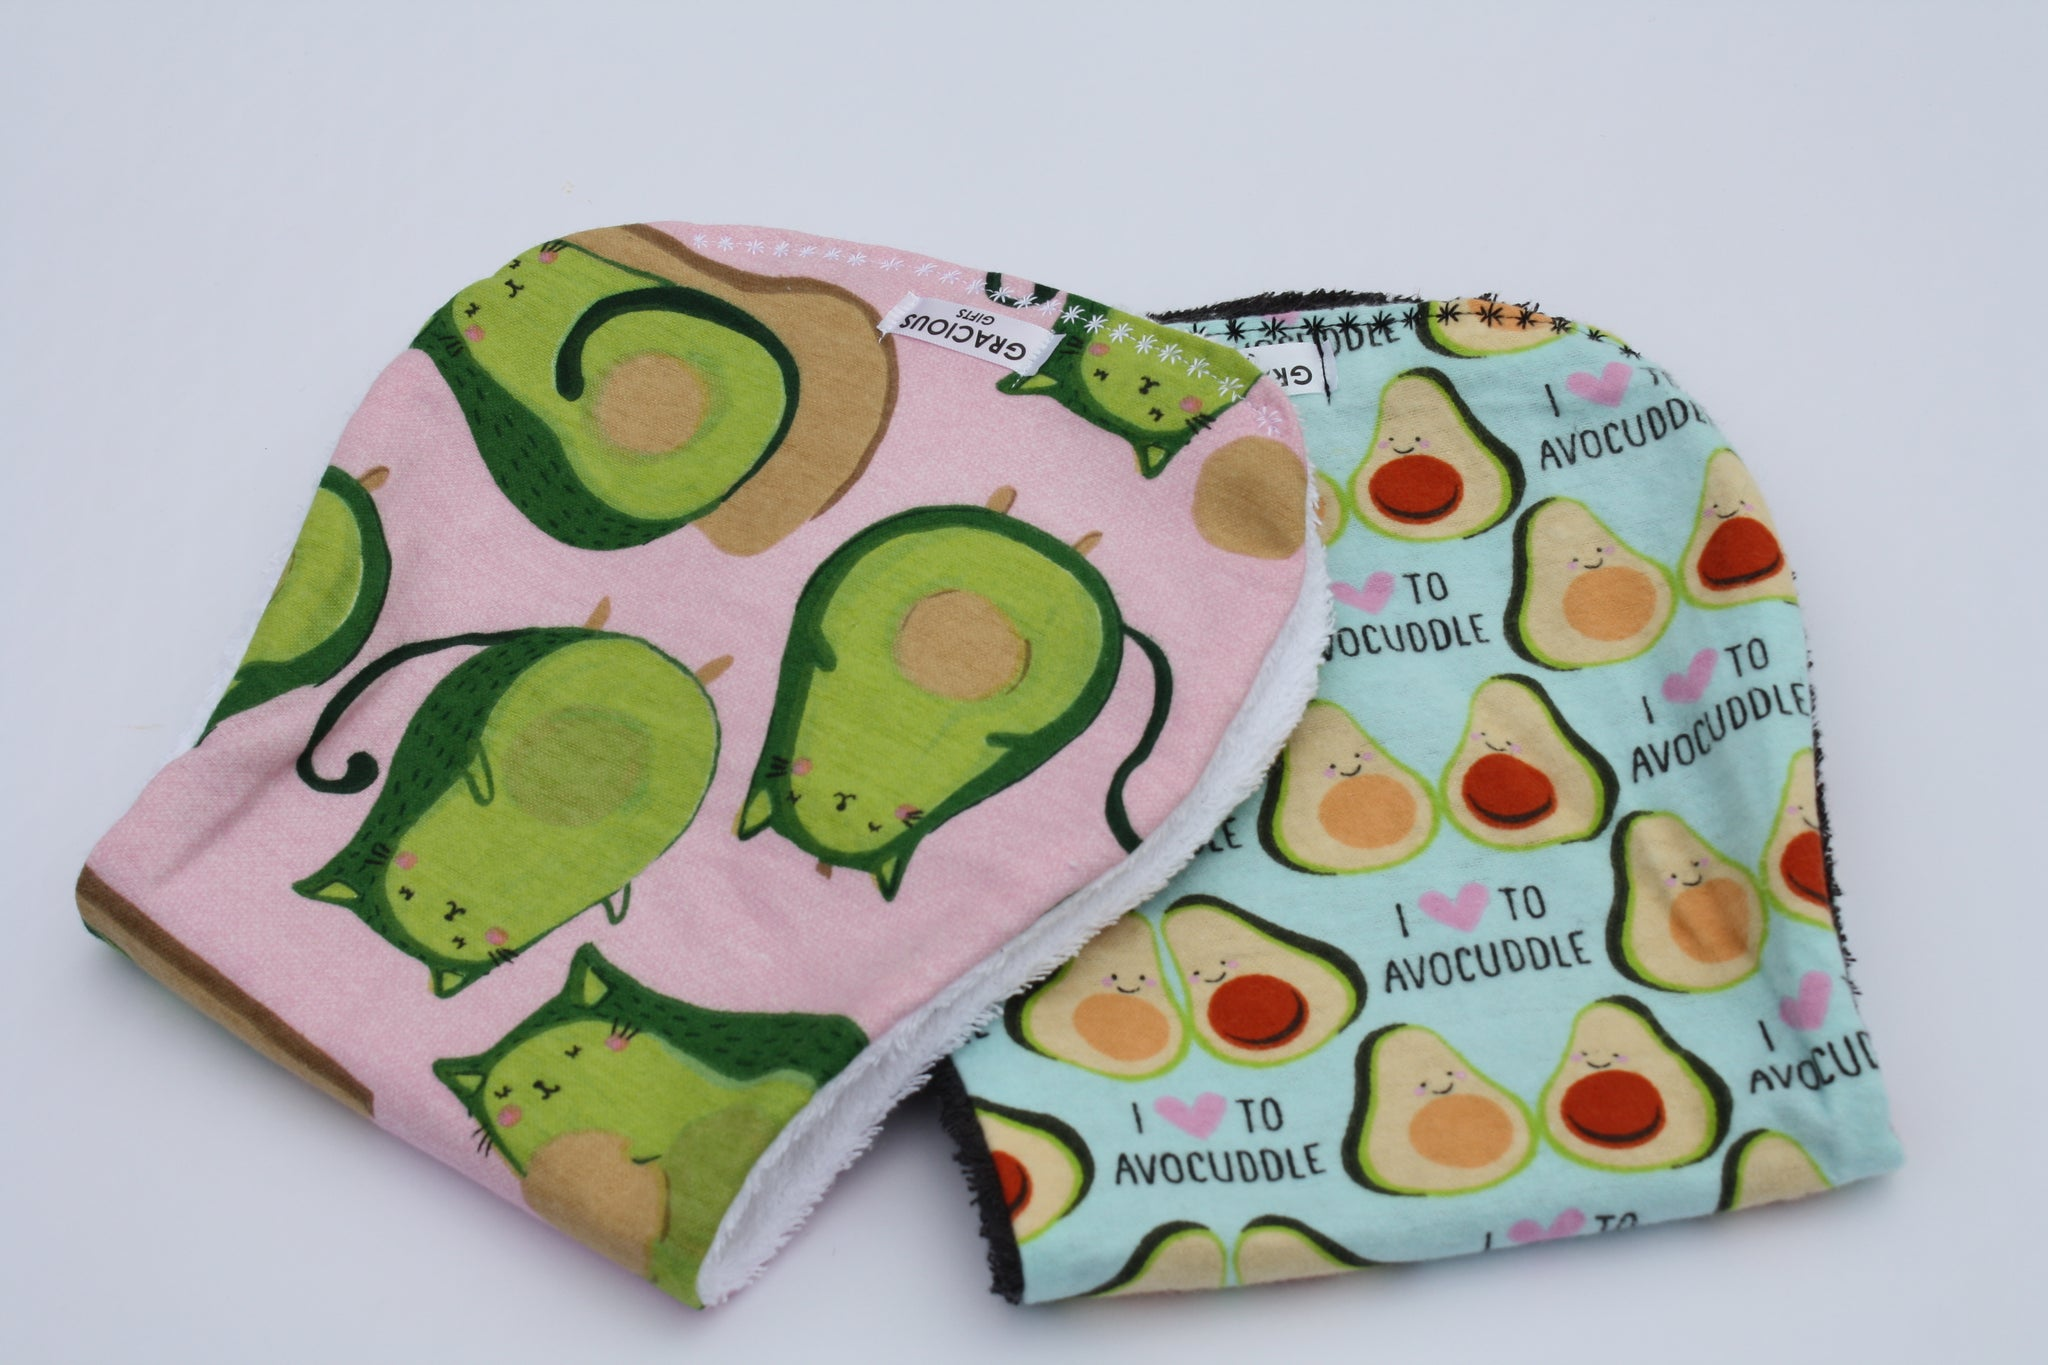 Burp Cloth Set - Avocato/Avocuddle